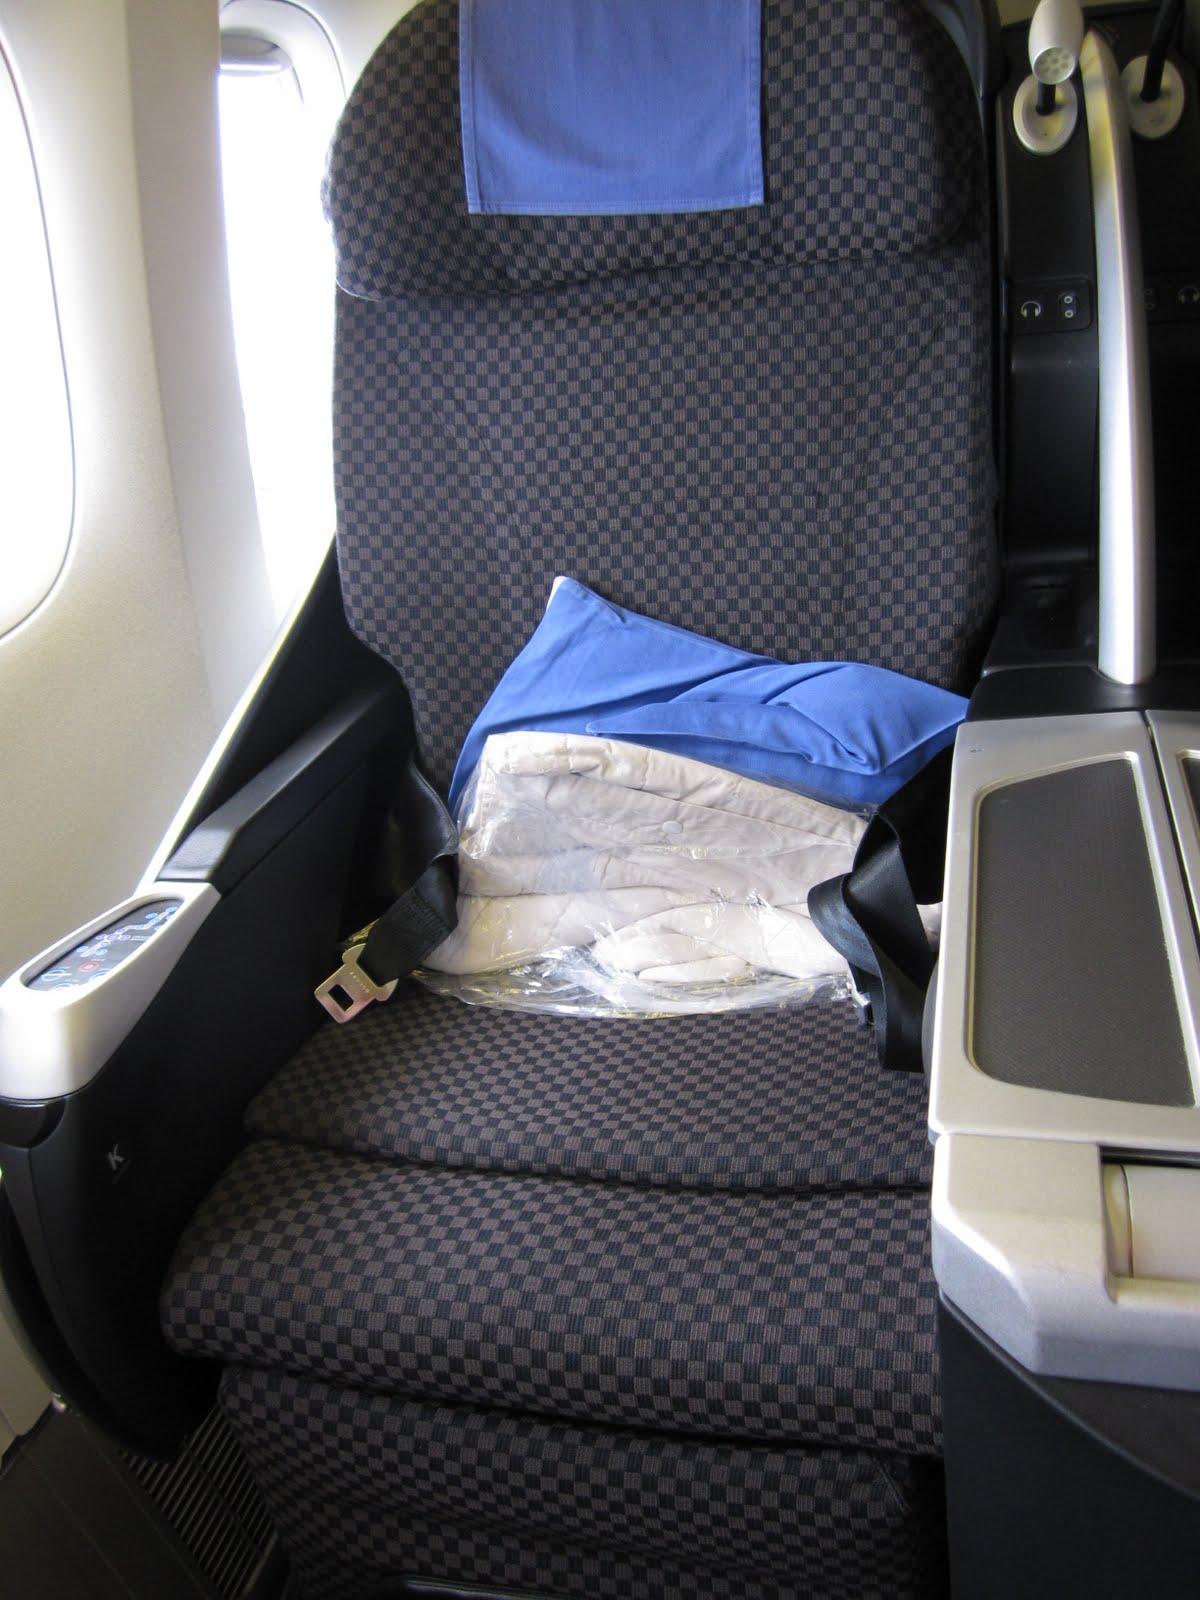 Travel Smart: [Airline Seats] Japan Airlines Executive Class Shell Flat Neo Seat - 日航商務艙體驗 JL 61 LAX to NRT